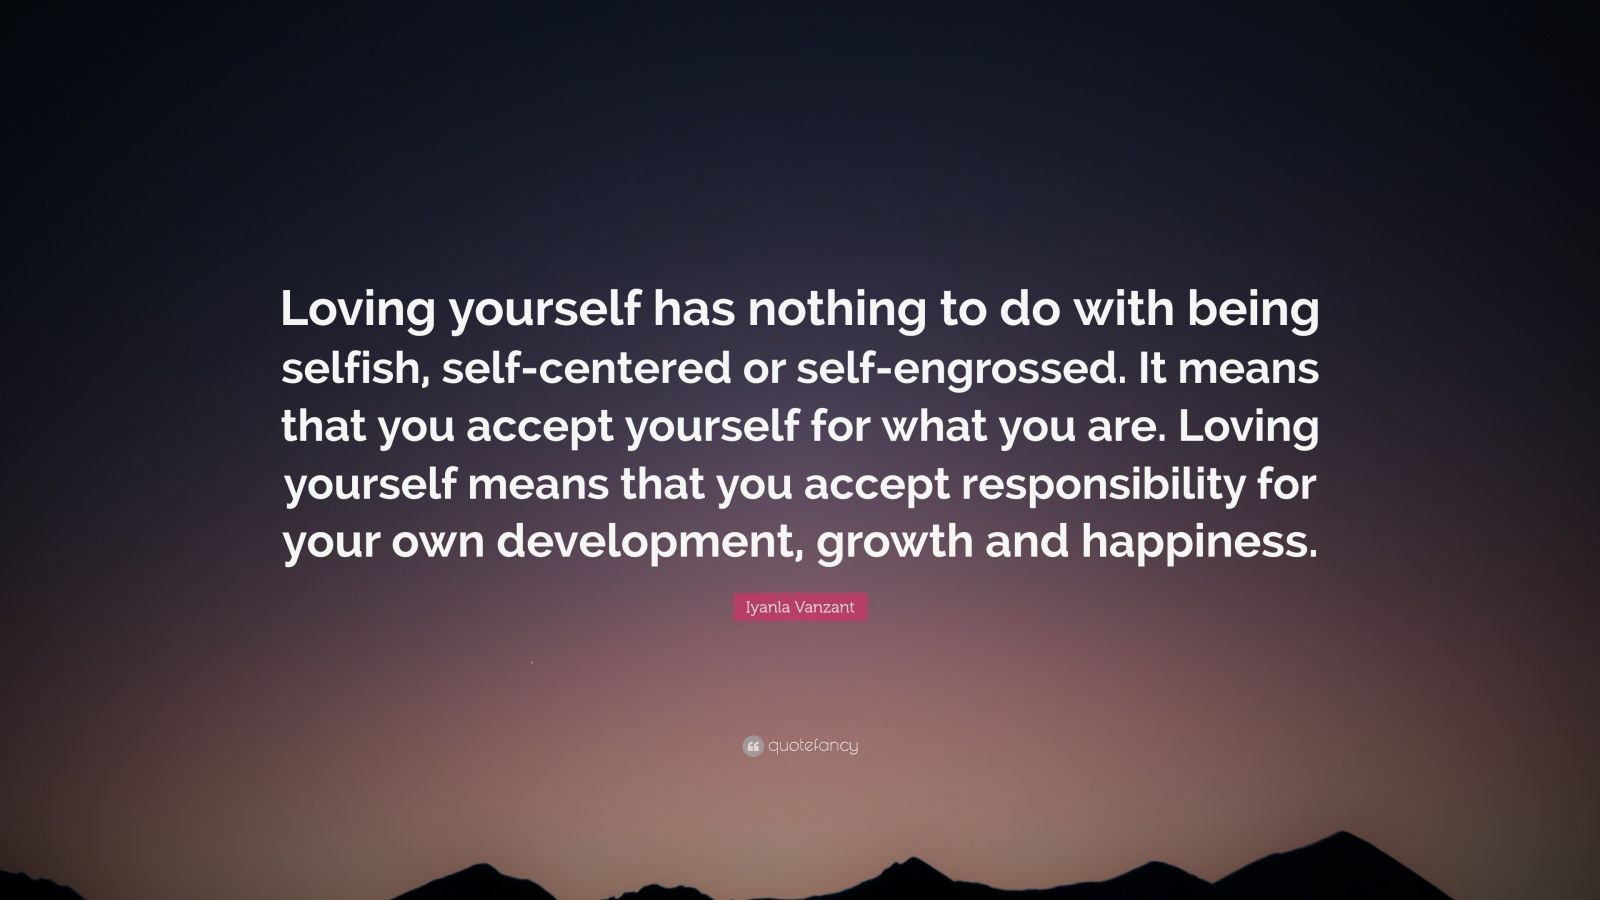 "Iyanla Vanzant Quote: ""Loving yourself has nothing to do with being selfish, self-centered or self-engrossed. It means that you accept yourself for what you are. Loving yourself means that you accept responsibility for your own development, growth and happiness."""